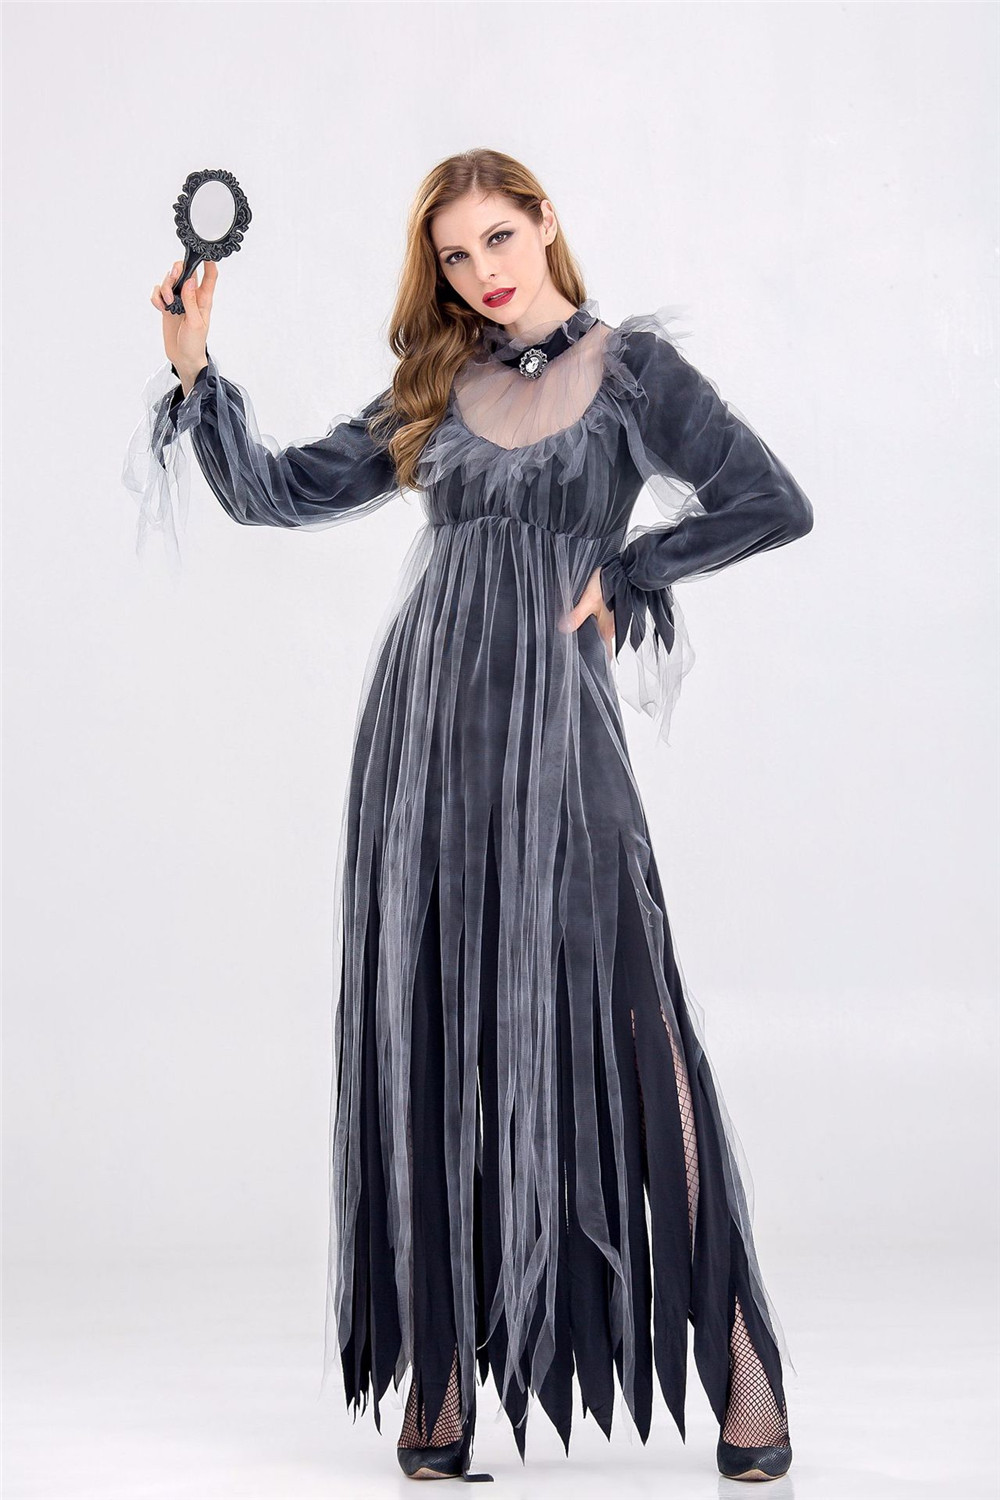 2018 Women Halloween Costumes New Horror Zombies Ghosts Bride Dress Bars Halloween Party Cosplay Devil Vampire Black Fancy Dress